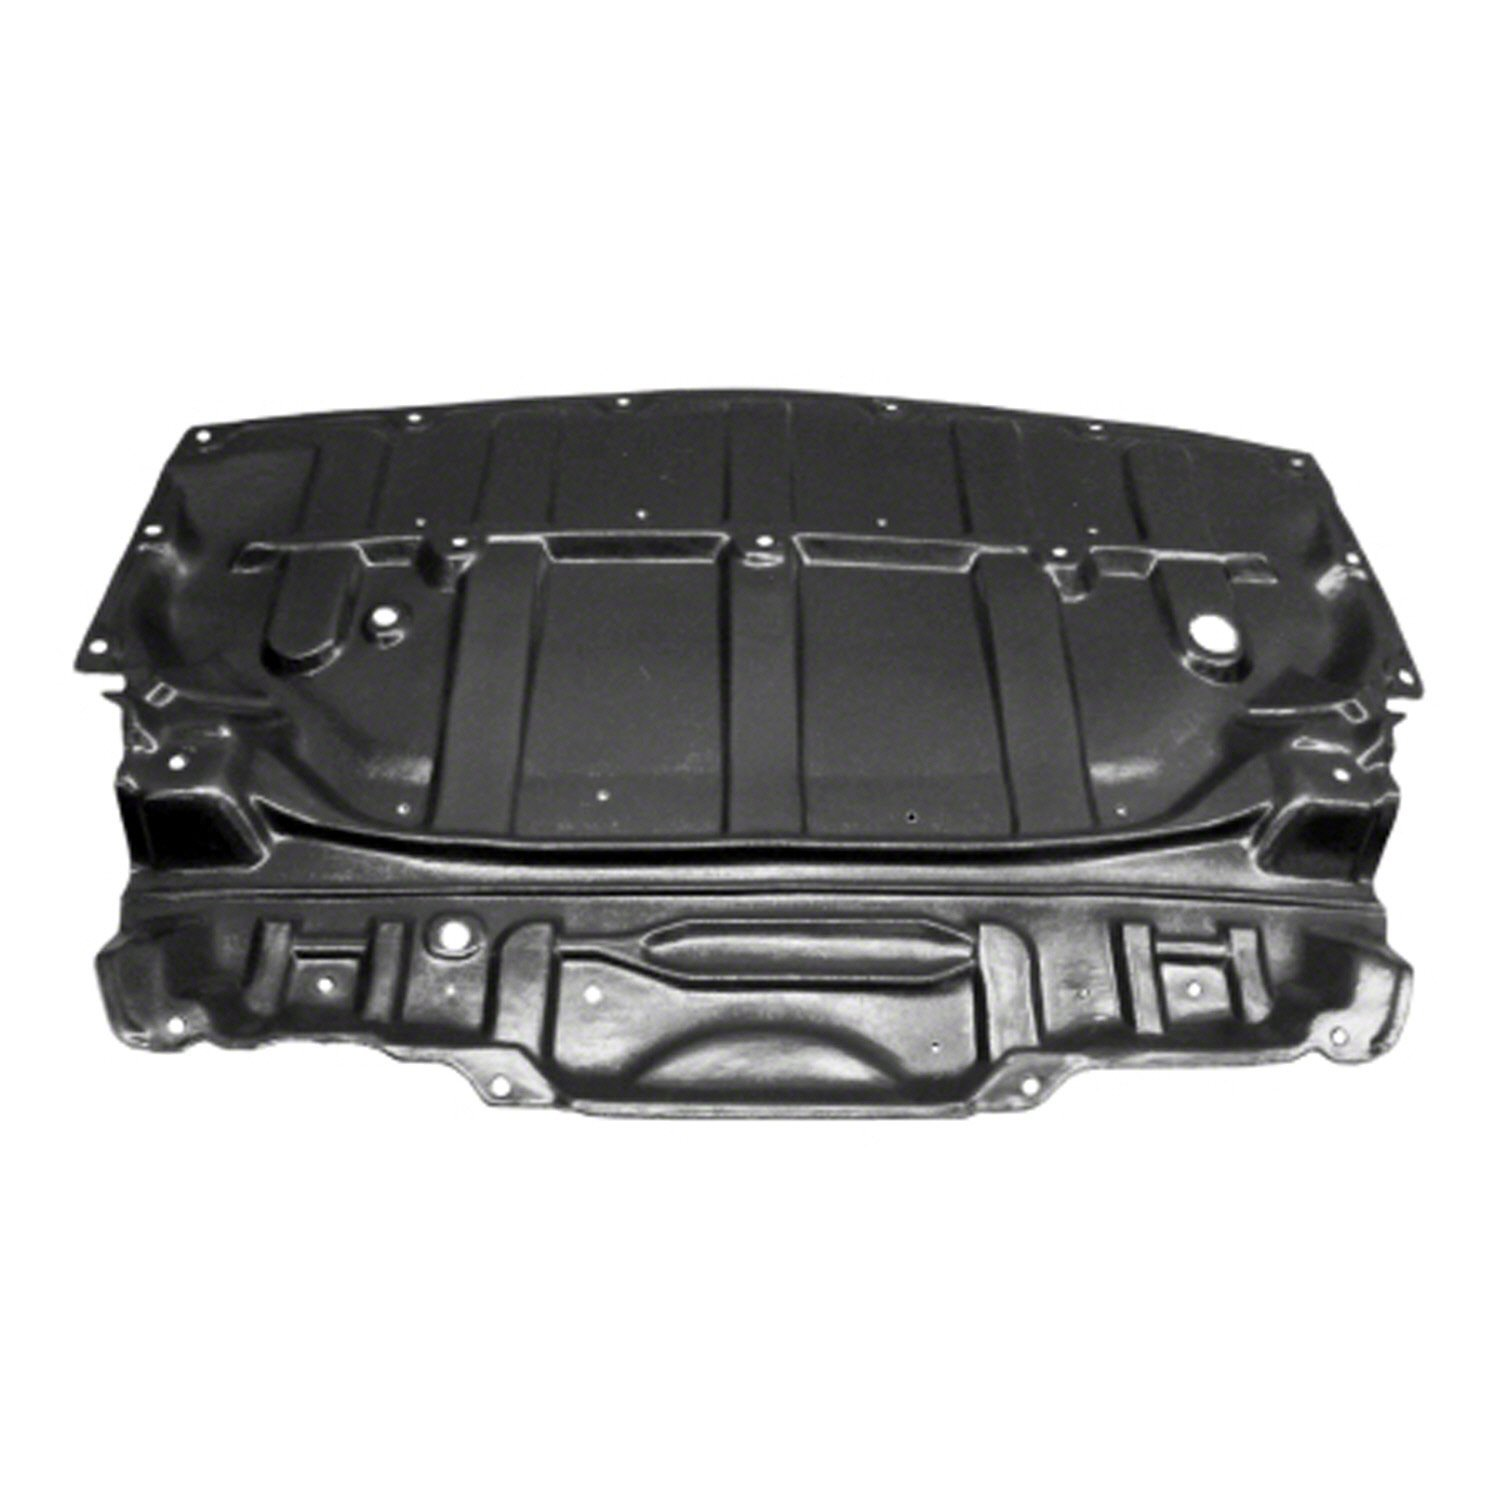 Crash Parts Plus IN1228117 Front Engine Cover for Infiniti G35, G37, Q60